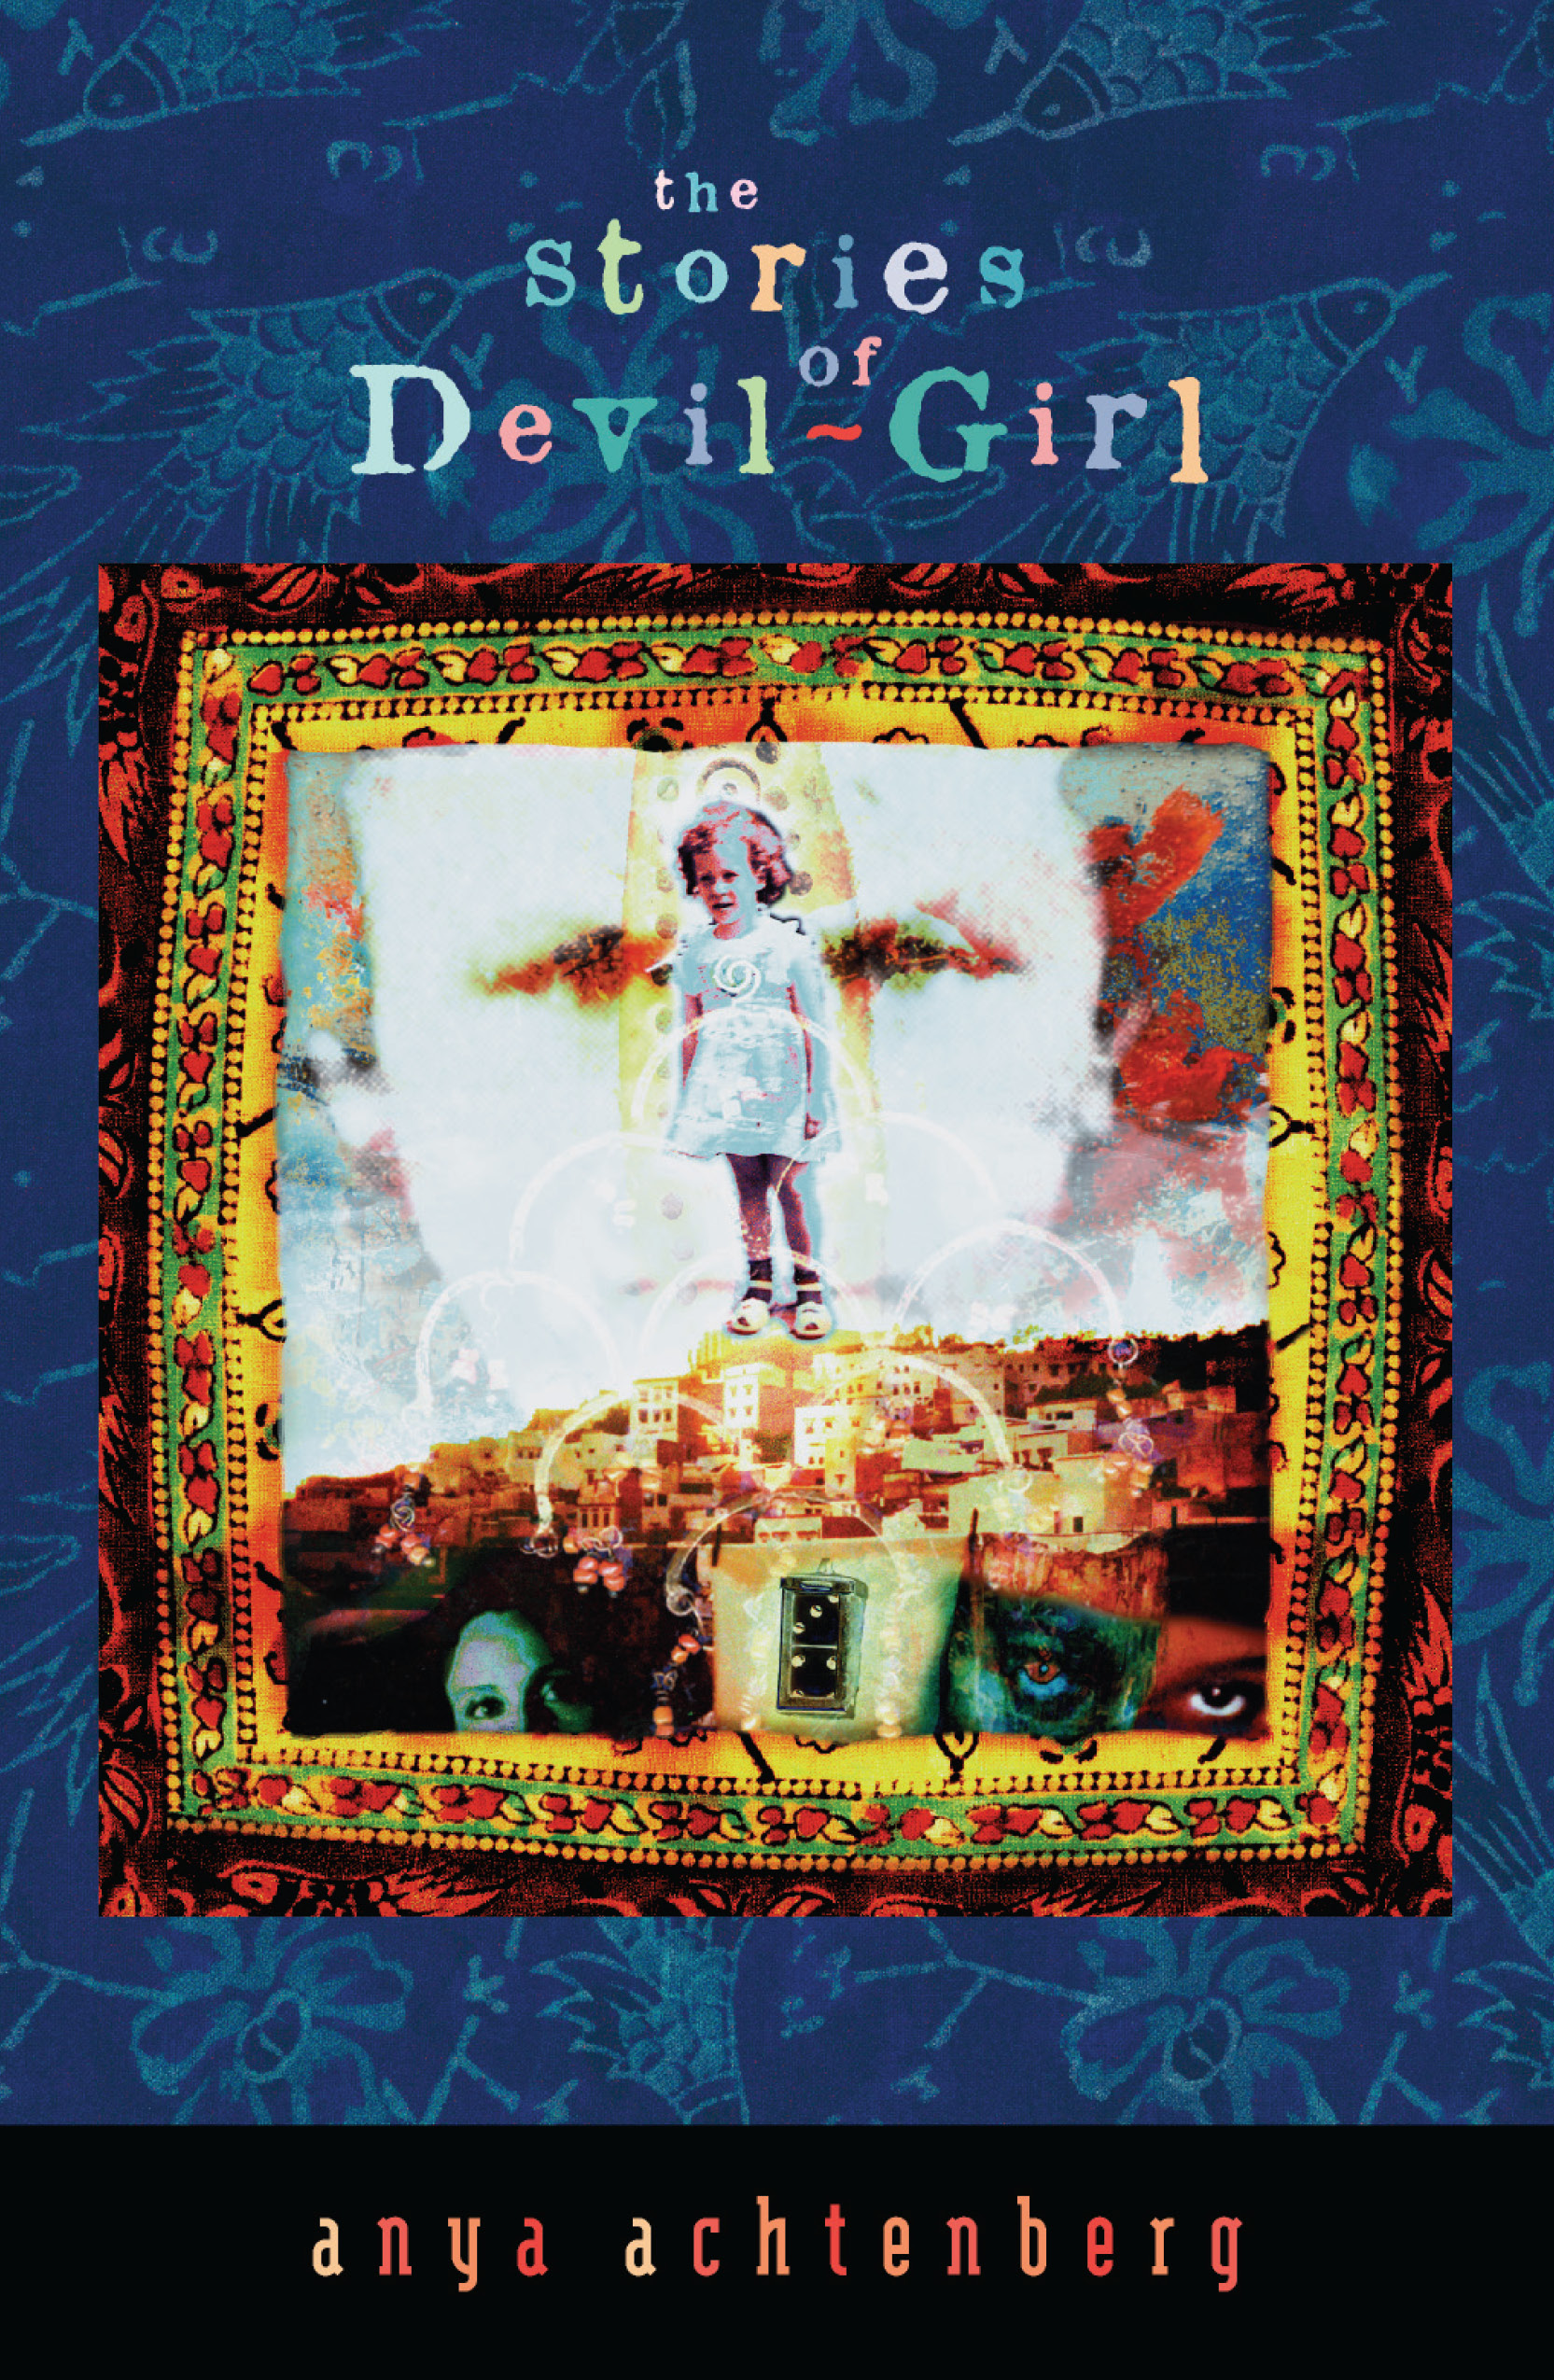 The Stories of Devil Girl